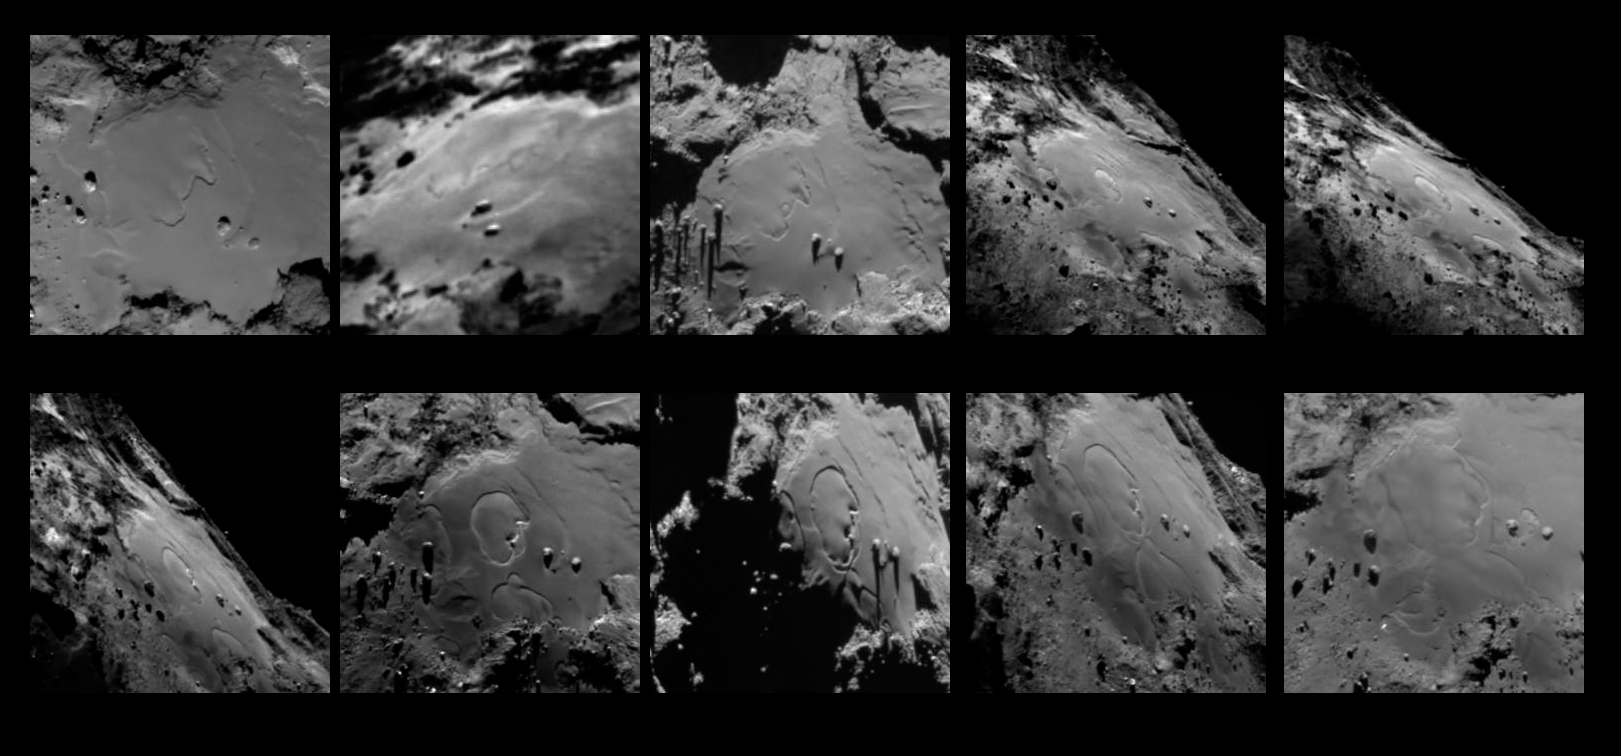 Philae: atterrissage et mission (partie 3) - Page 8 Comet_surface_changes